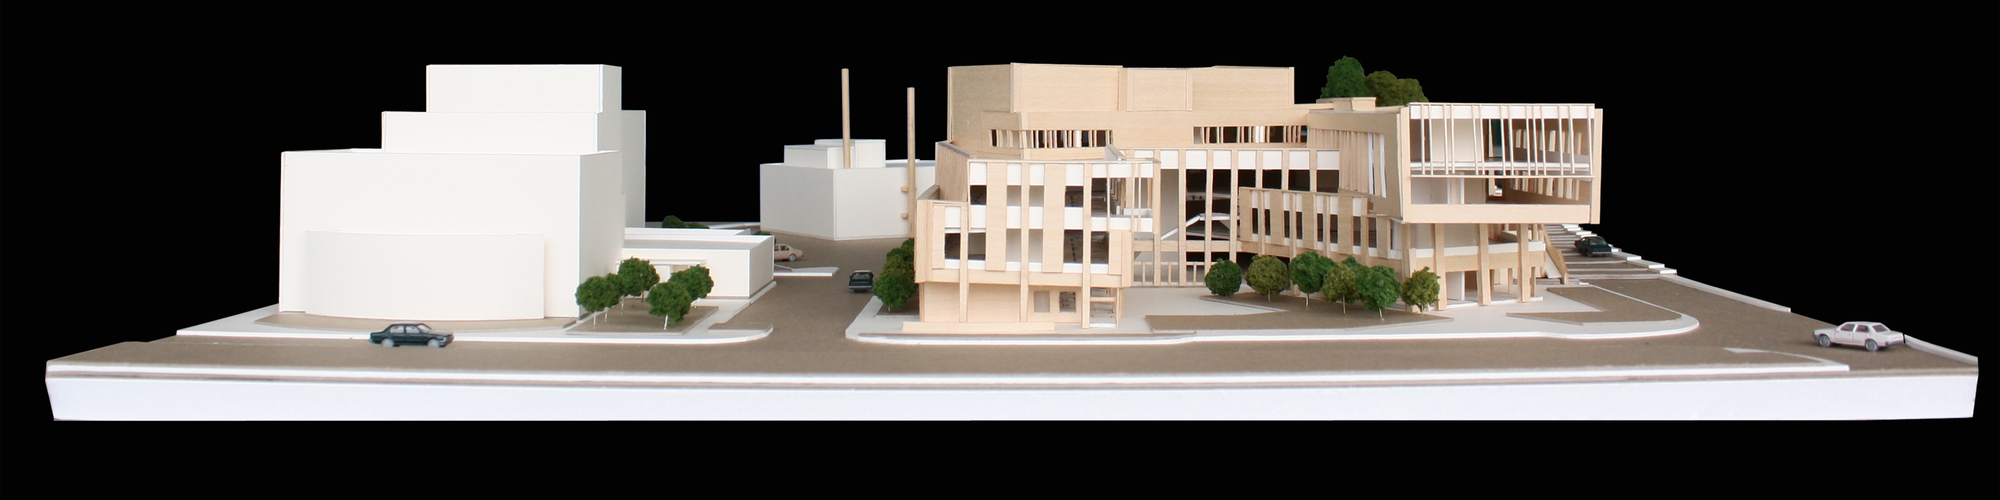 50_Model-_View_from_East_Elevation.jpg